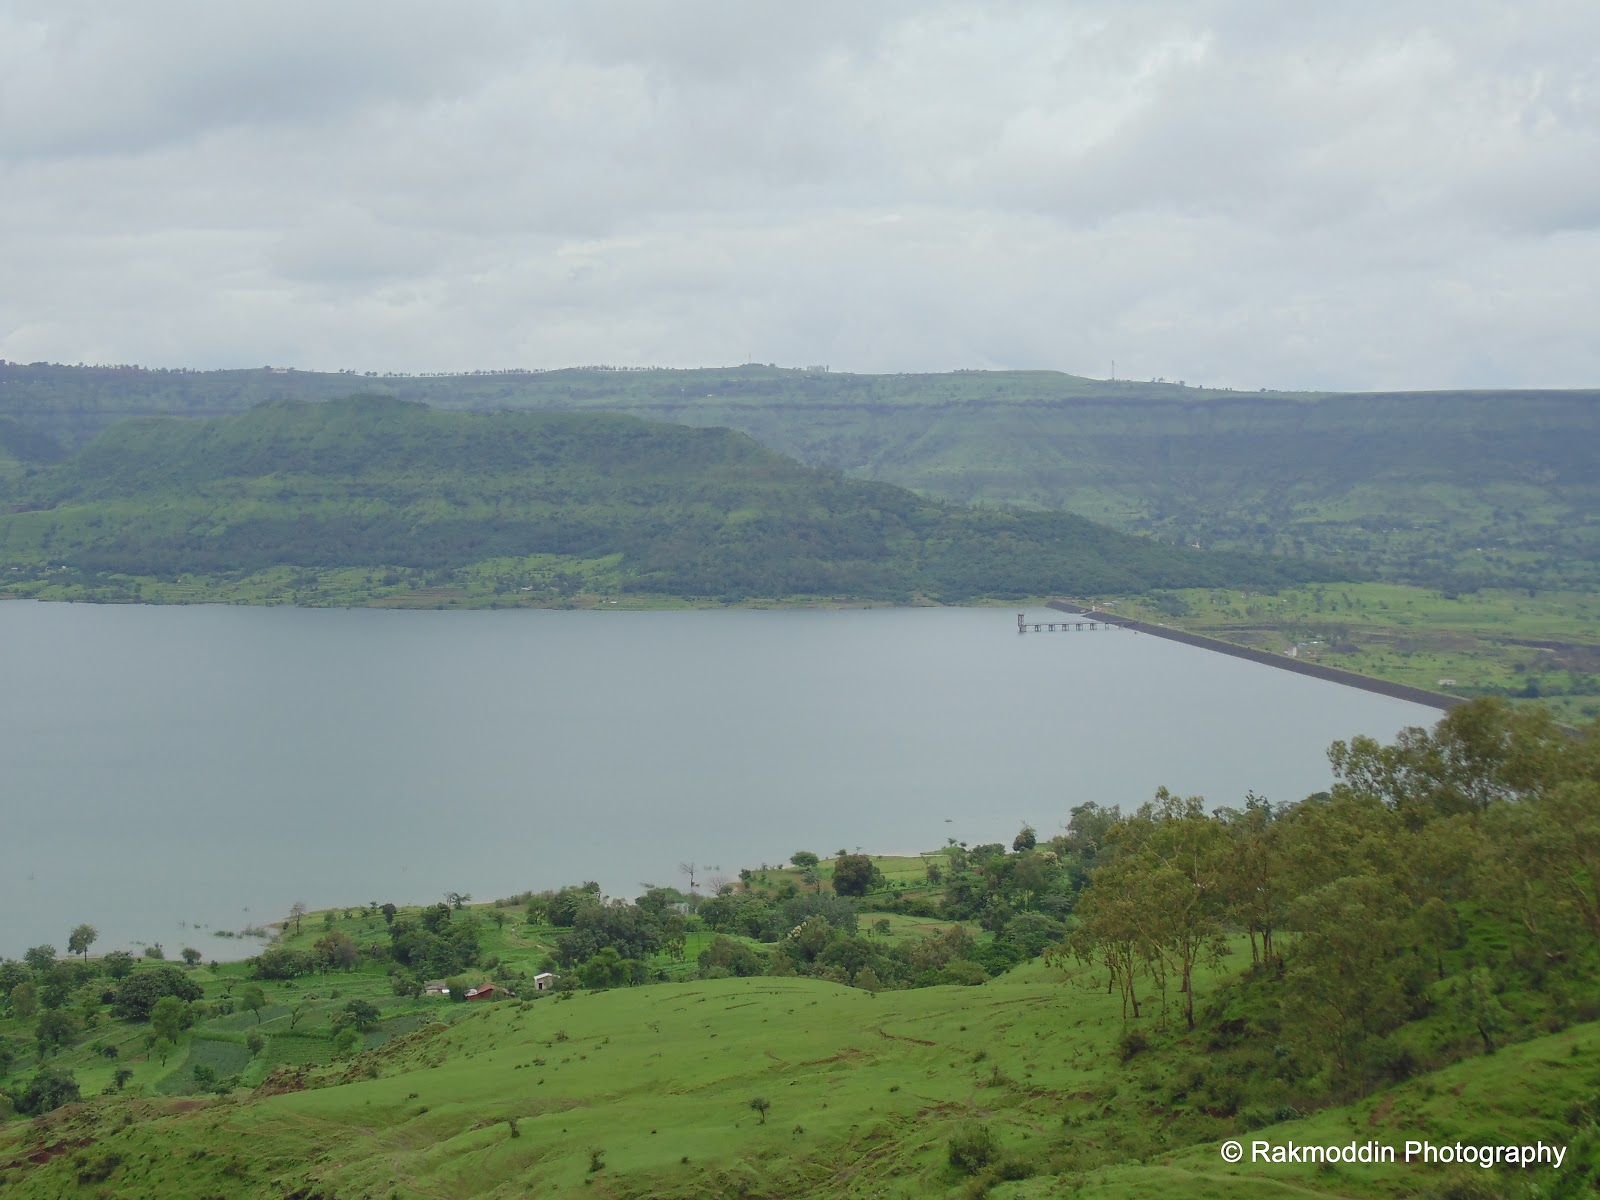 Thoseghar waterfalls in Satara during the monsoon